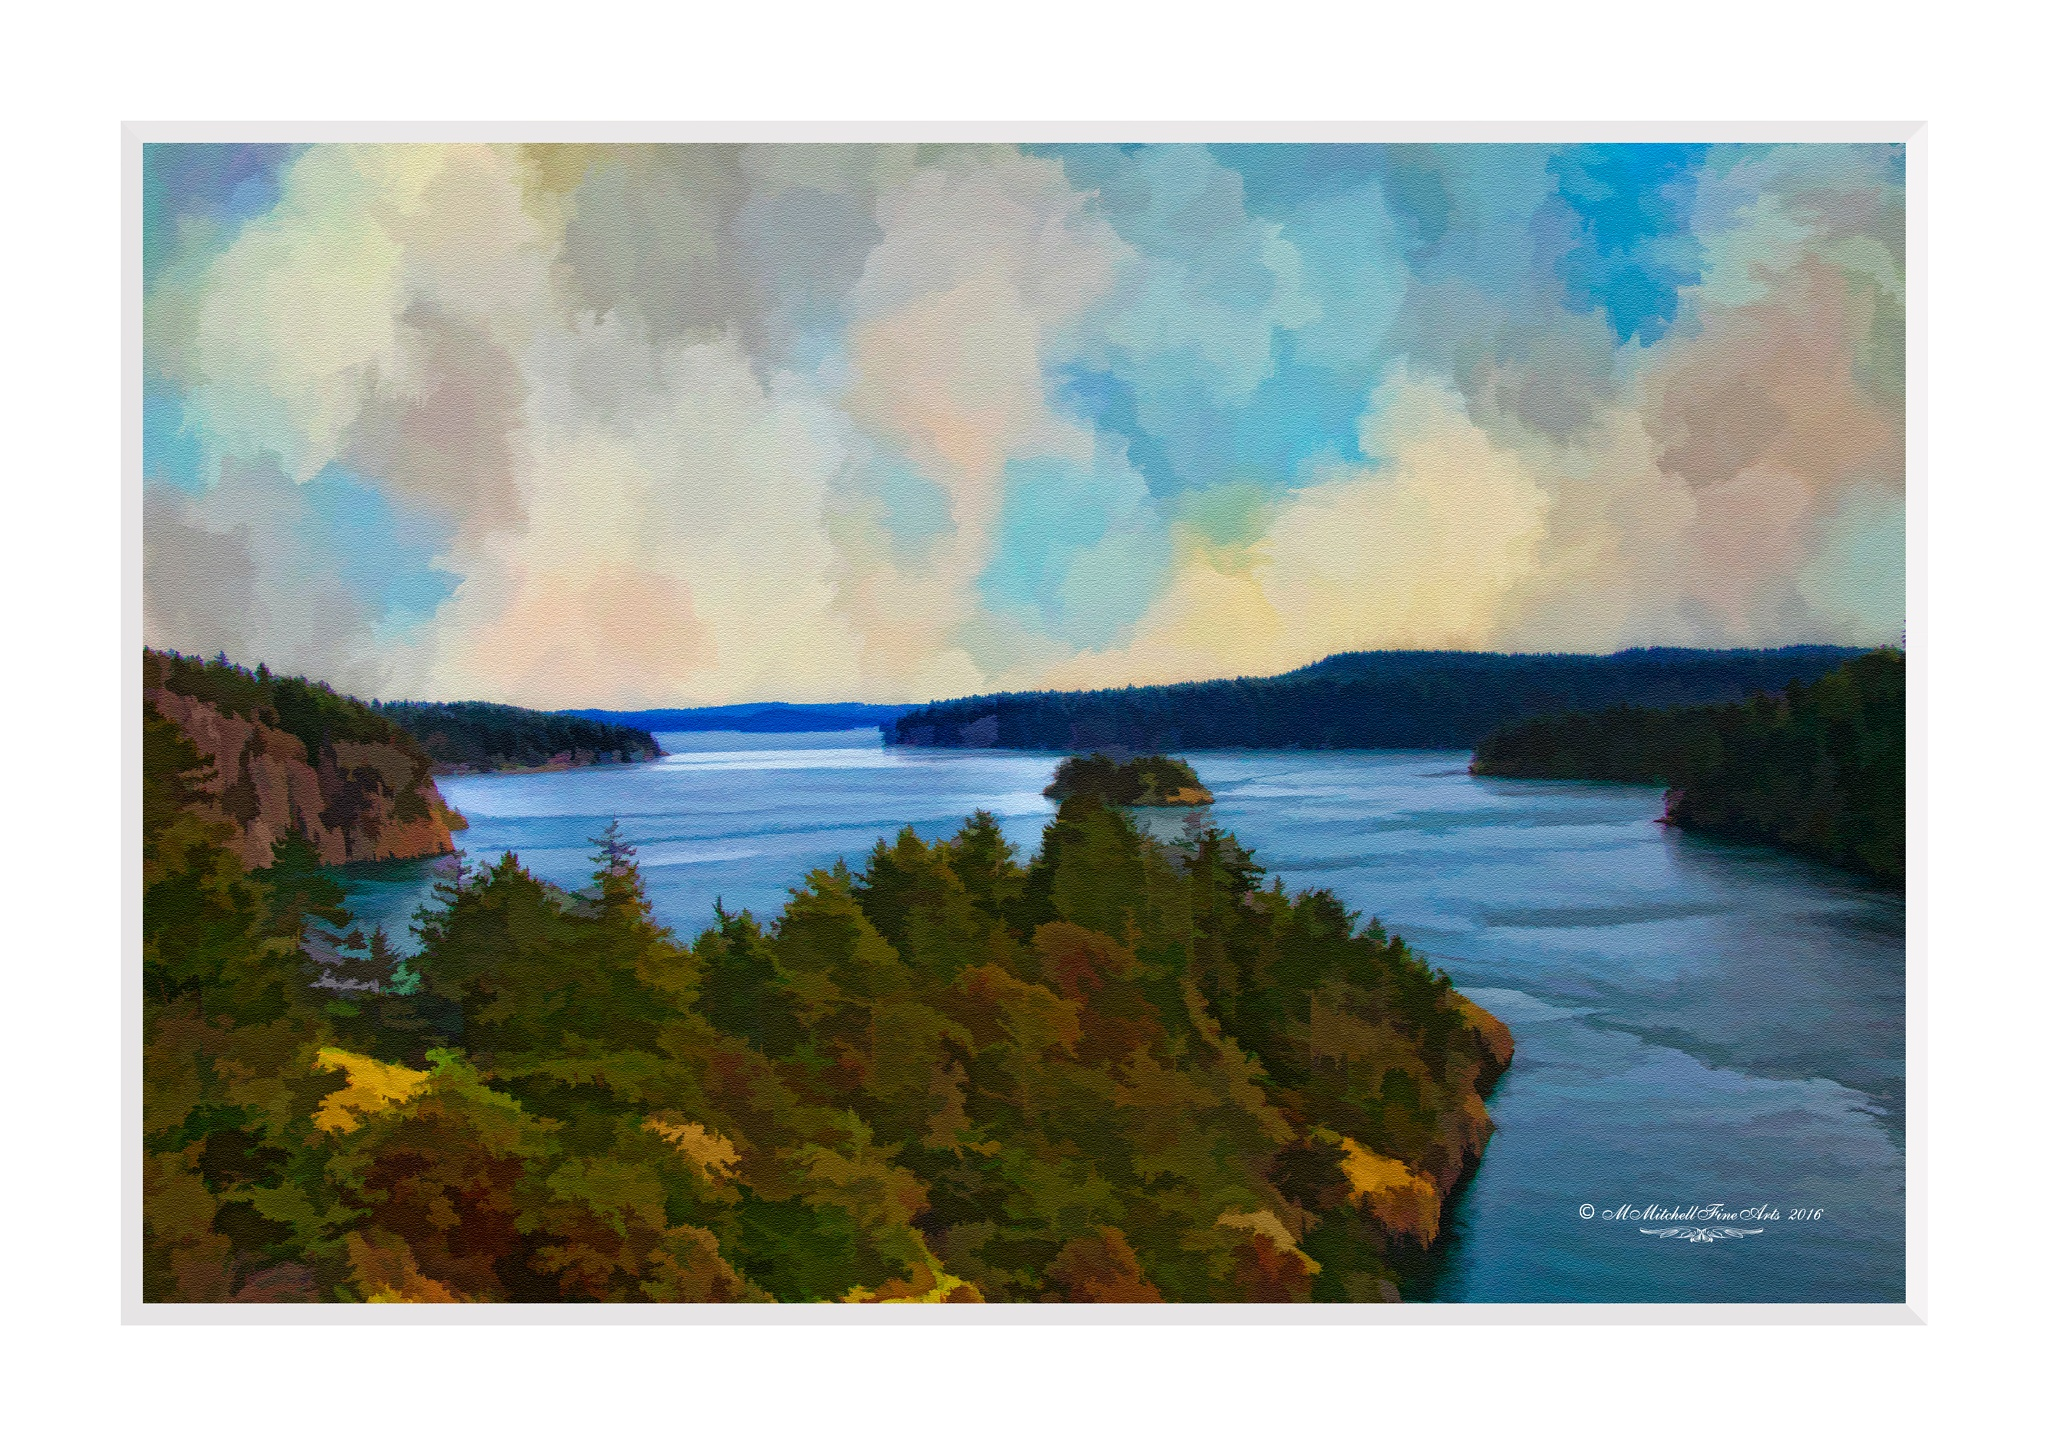 A View from Deception Pass Bridge by Mary Mitchell